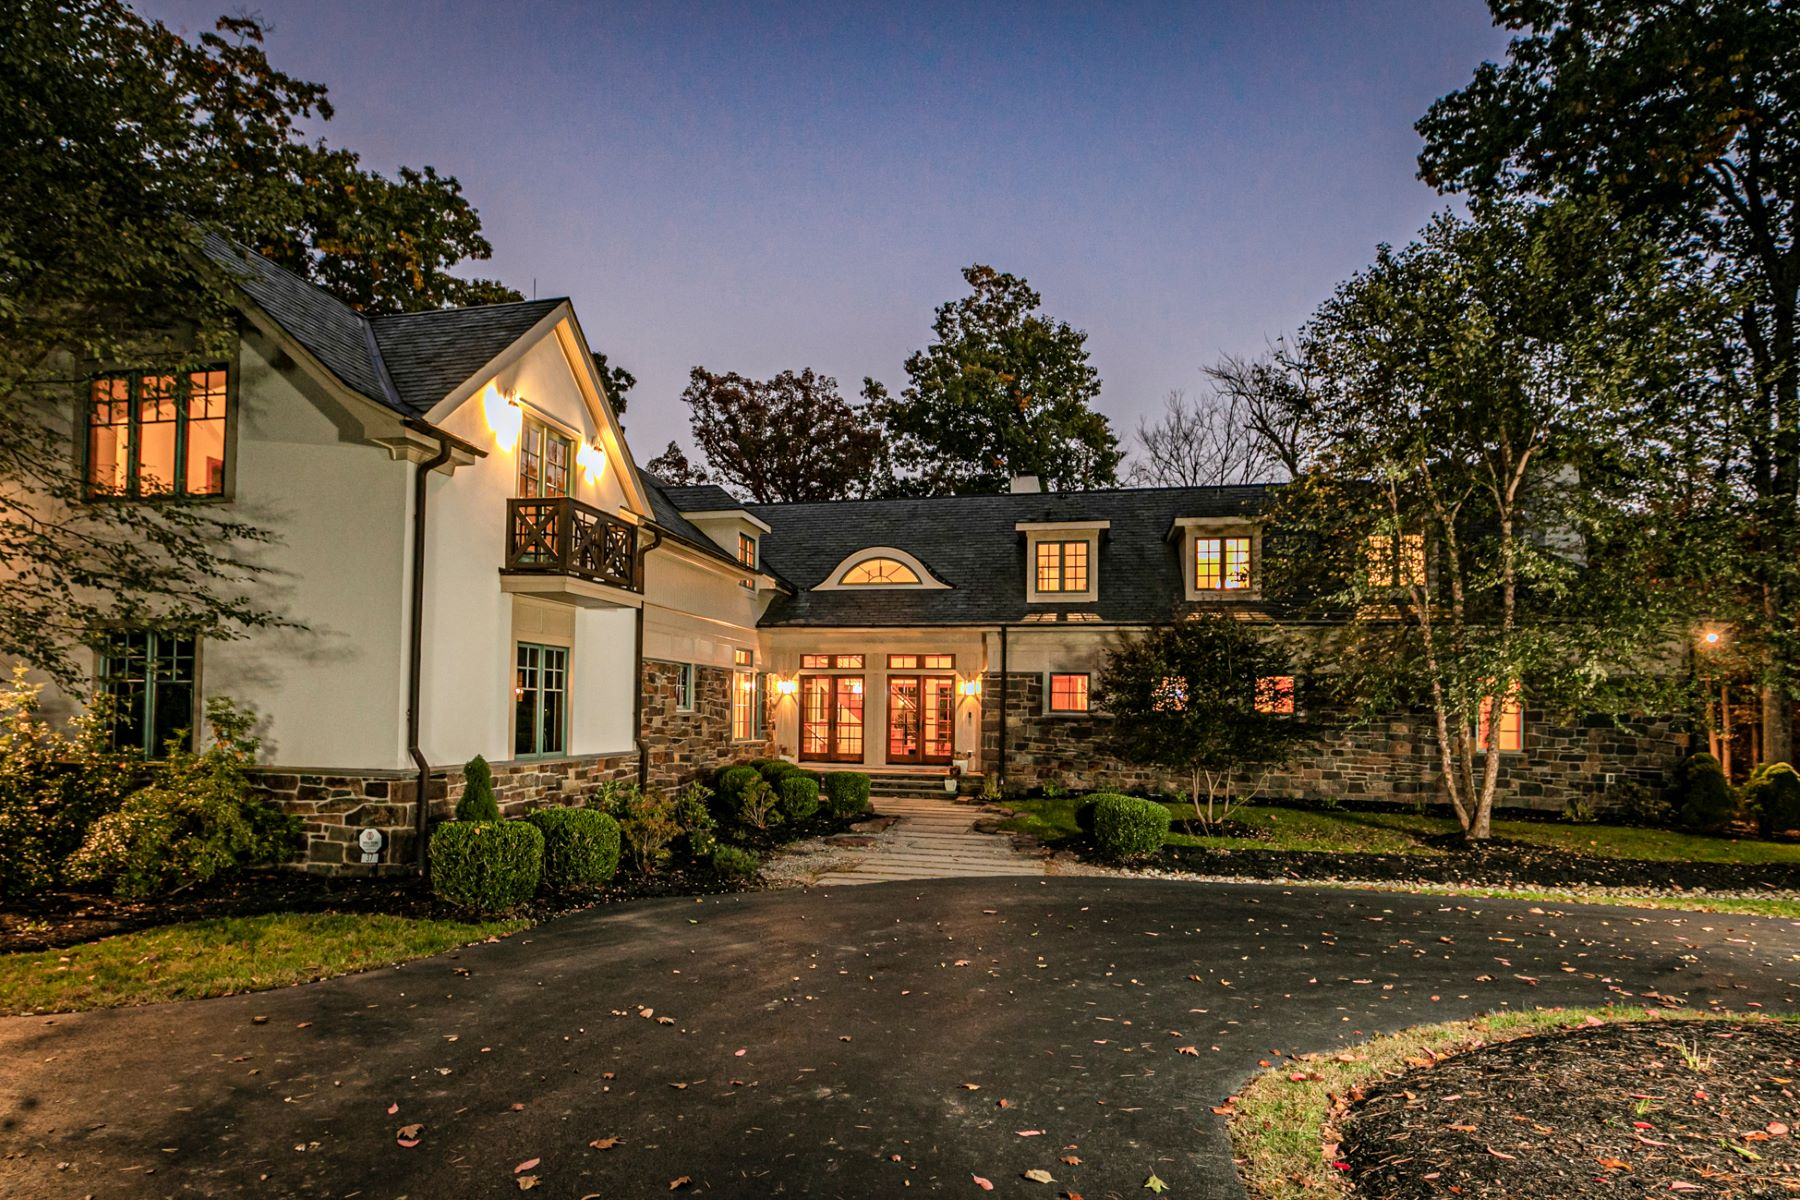 Single Family Homes for Active at Luxury Craftsman Home Perched Above Stoney Brook 37 Stoney Brook Lane Princeton, New Jersey 08540 United States